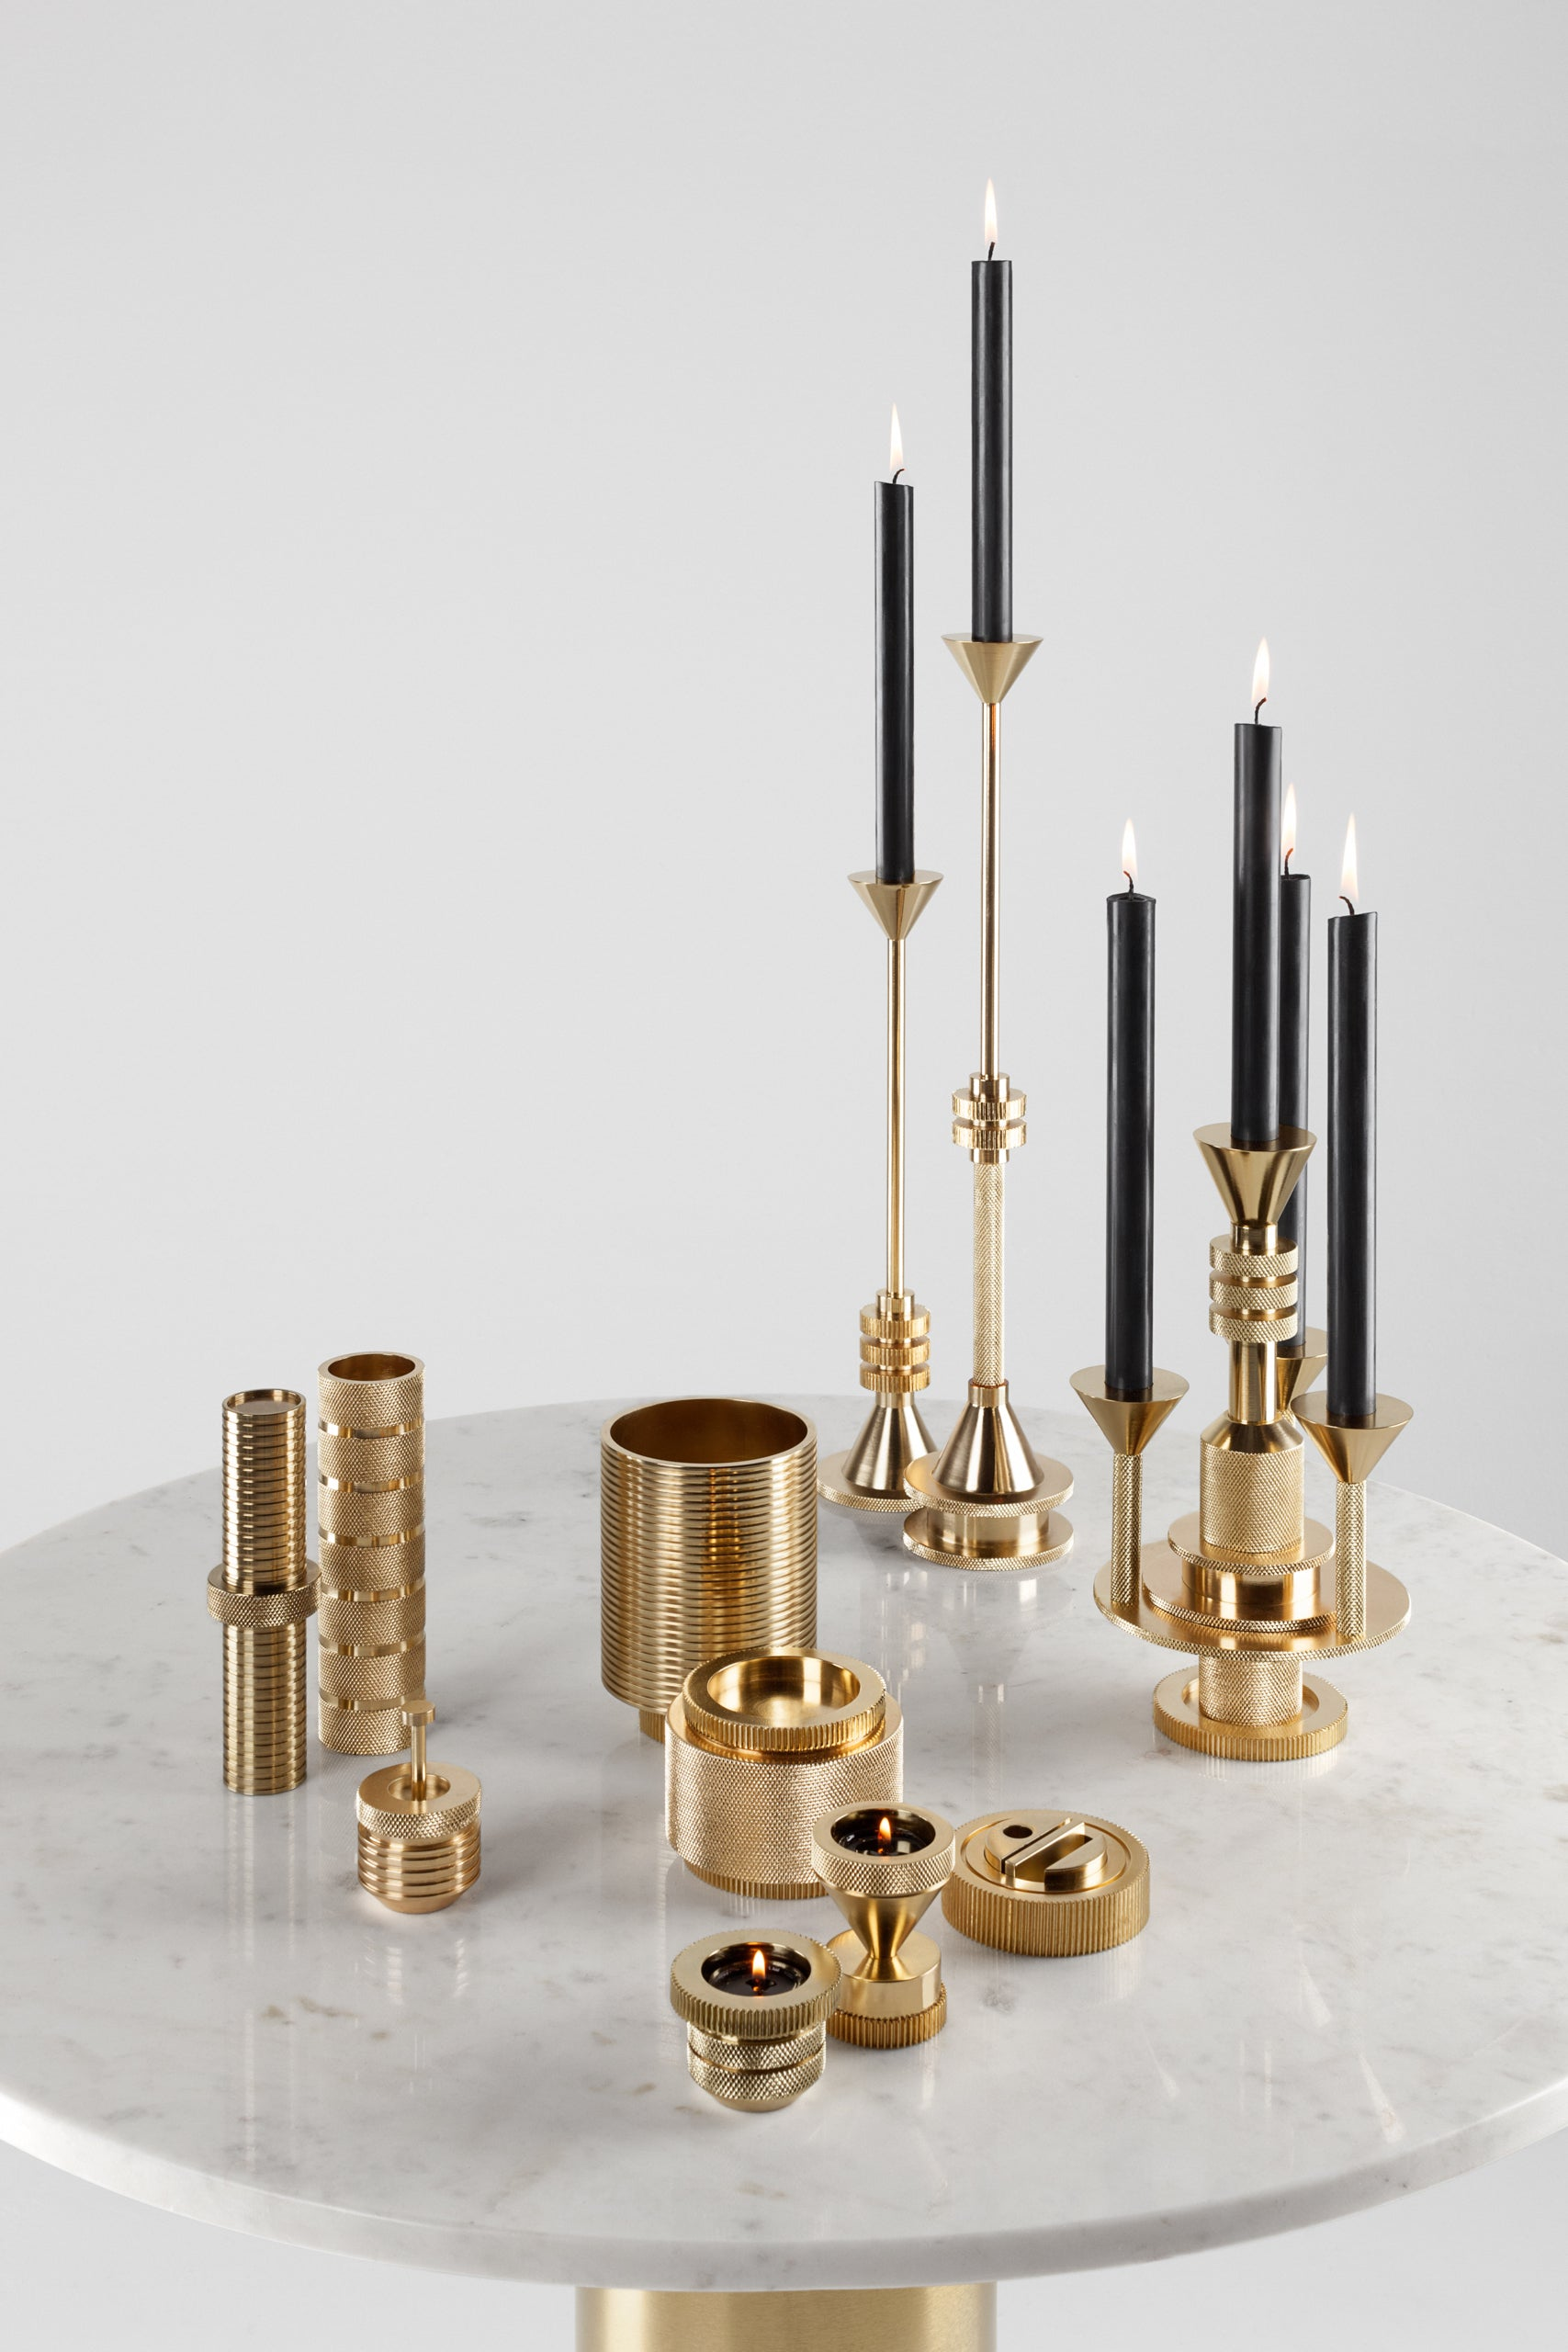 Tom Dixon Cog brass candlestick collection